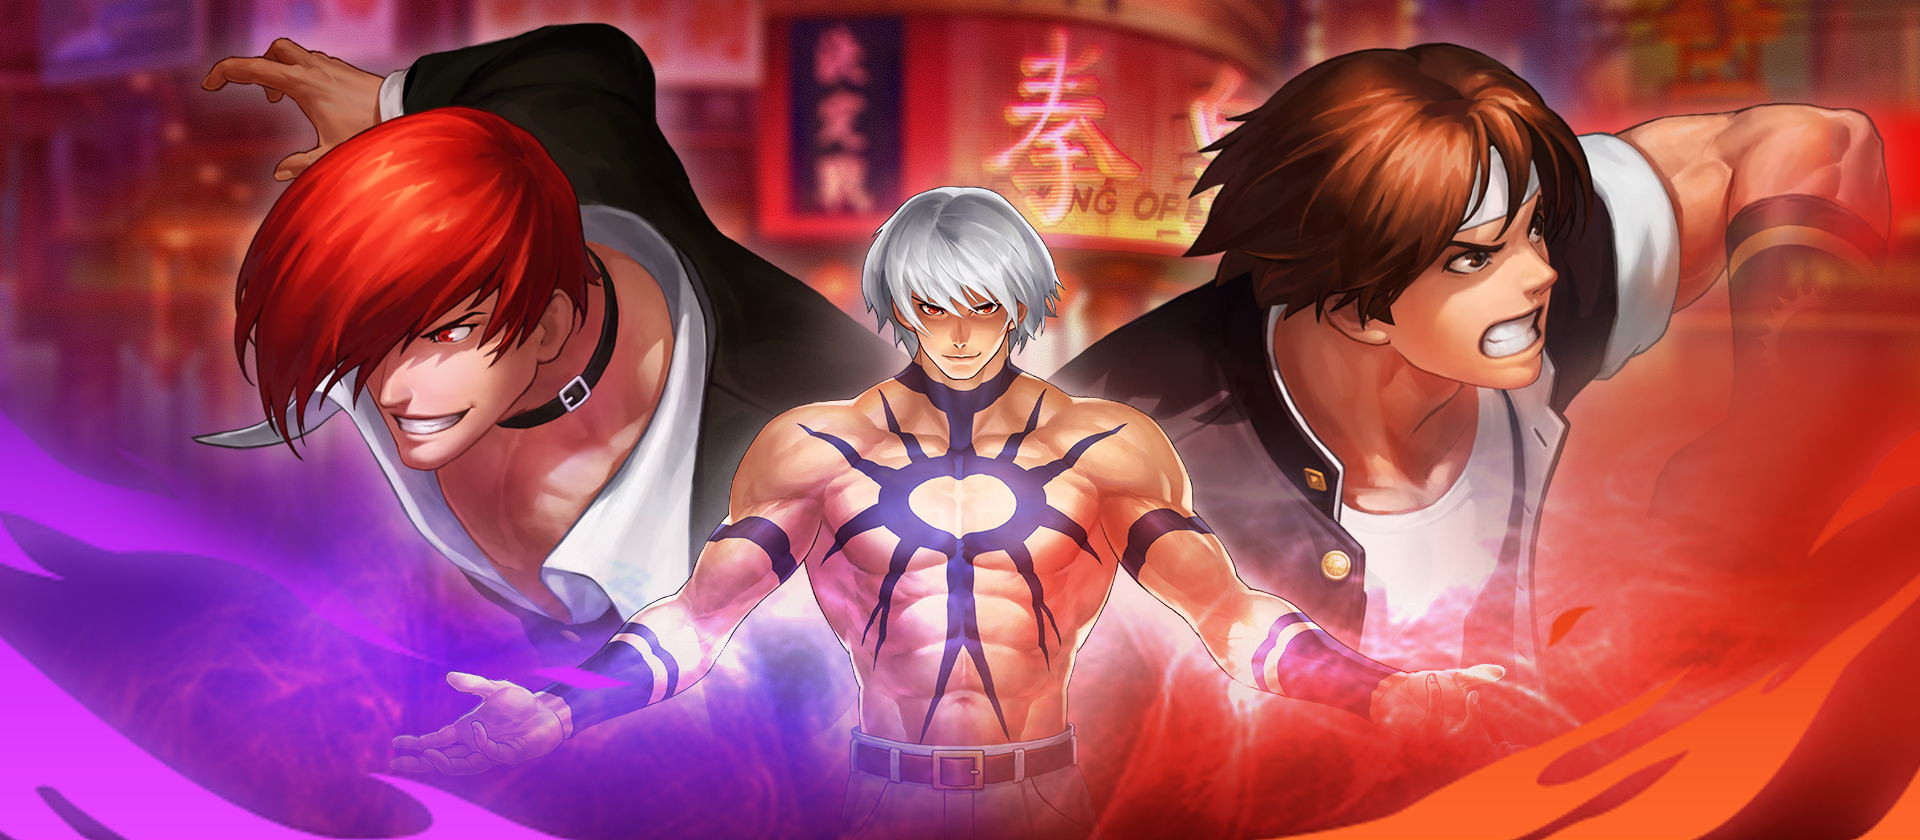 King of Fighters 98 Web games Official Website